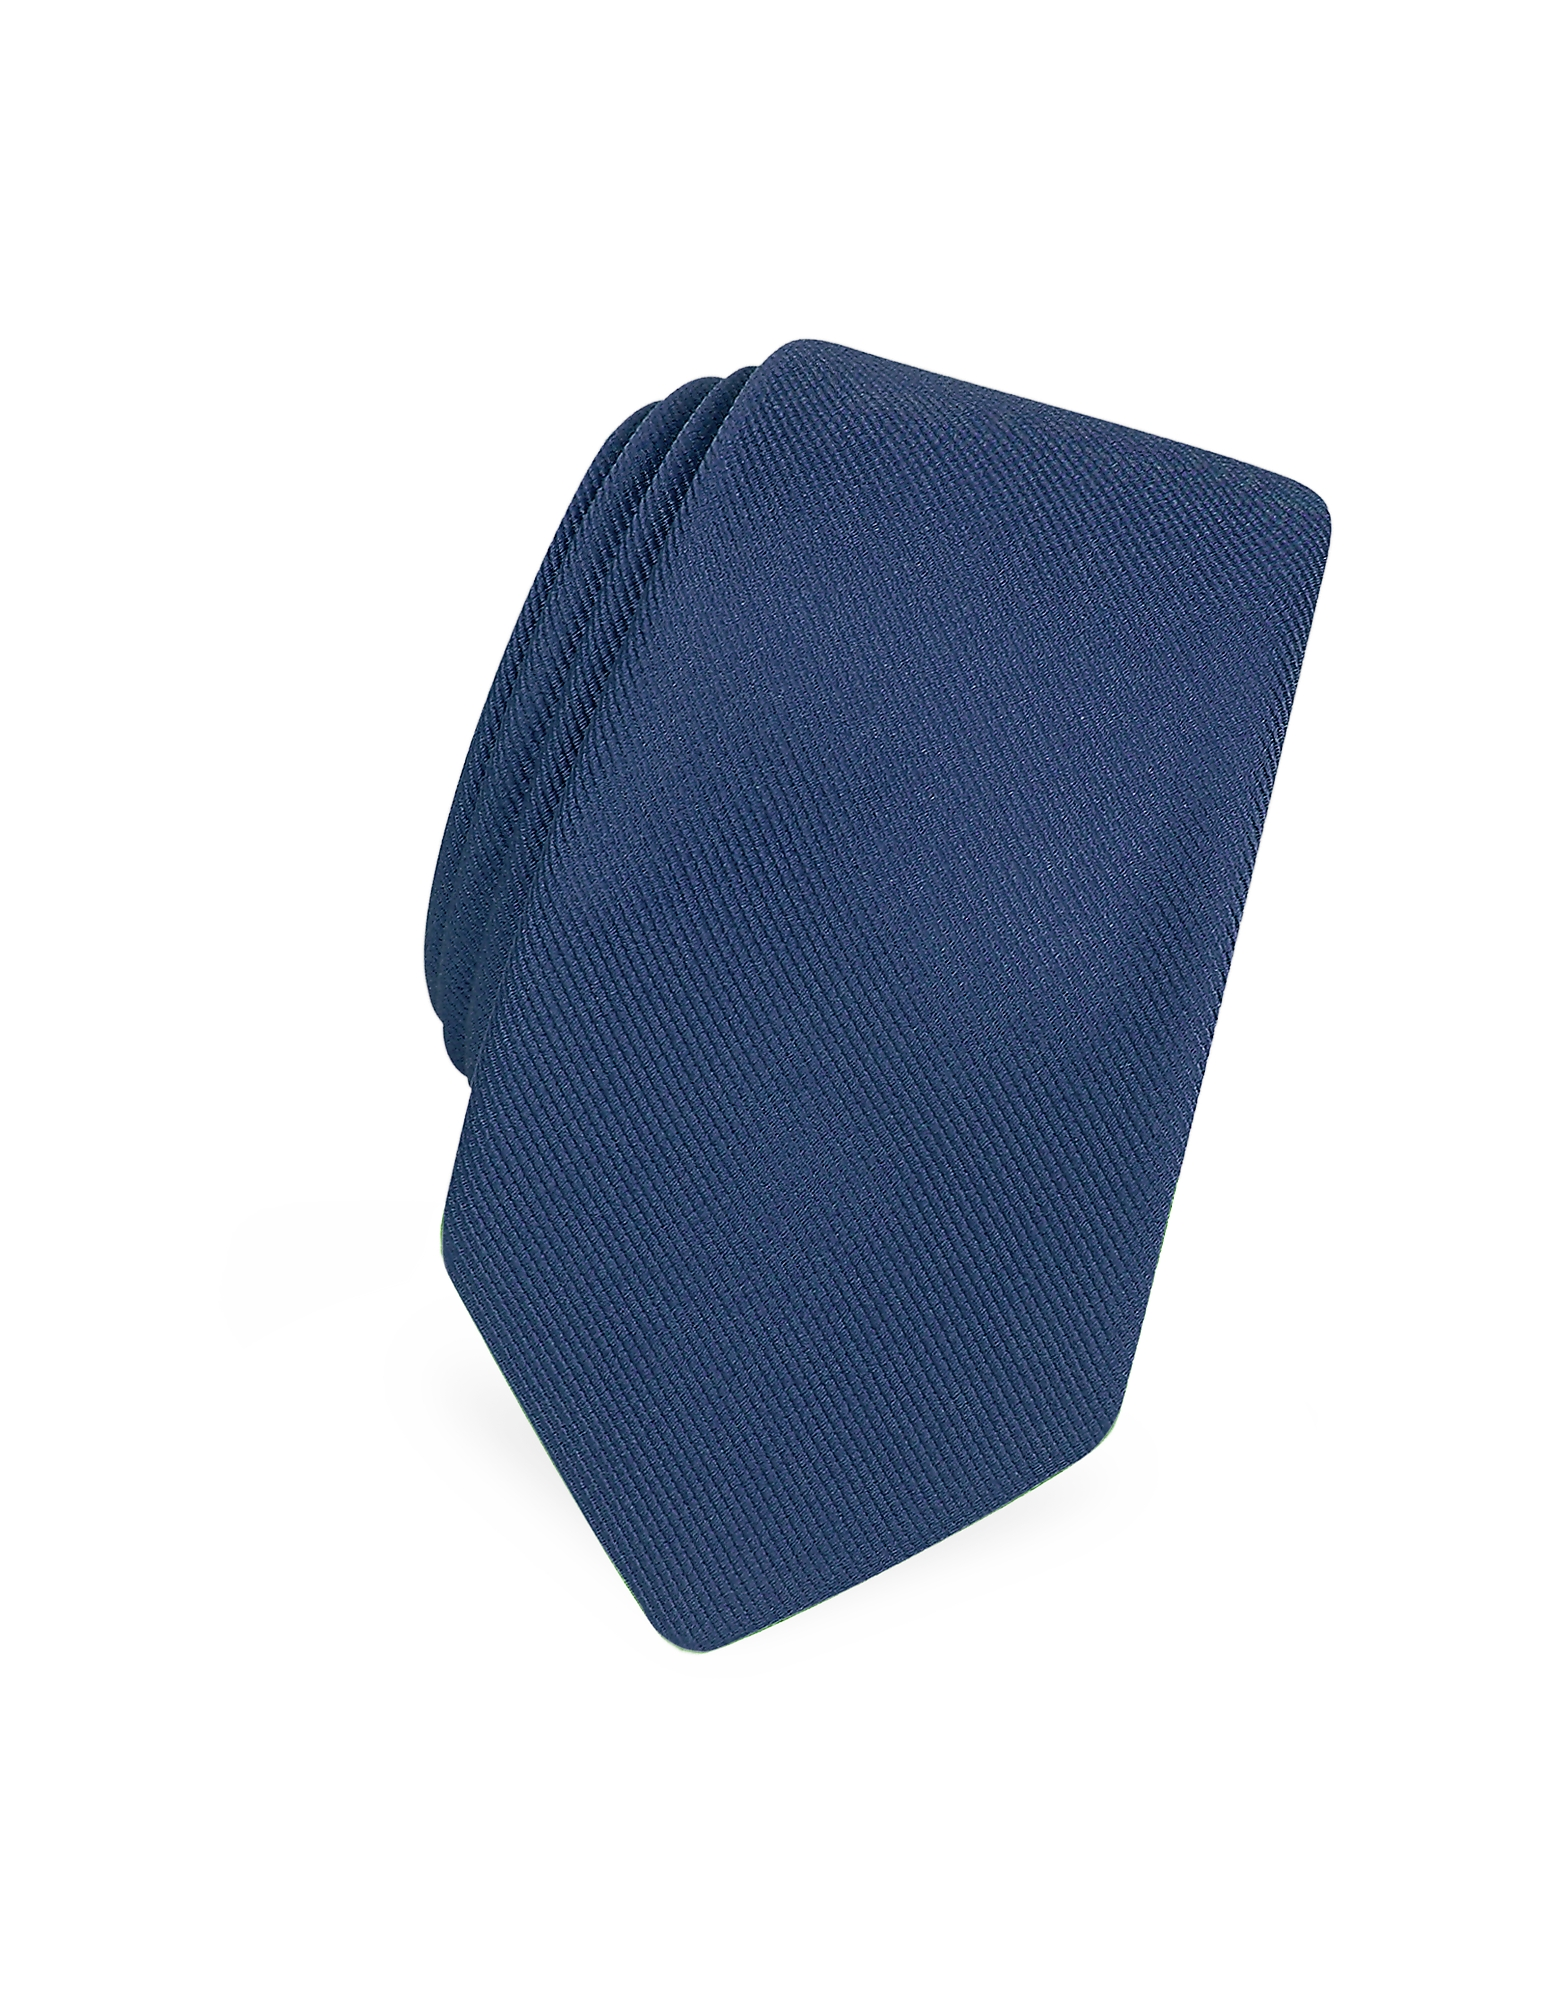 Forzieri Designer Narrow Ties, Solid Blue Twill Silk Narrow Tie